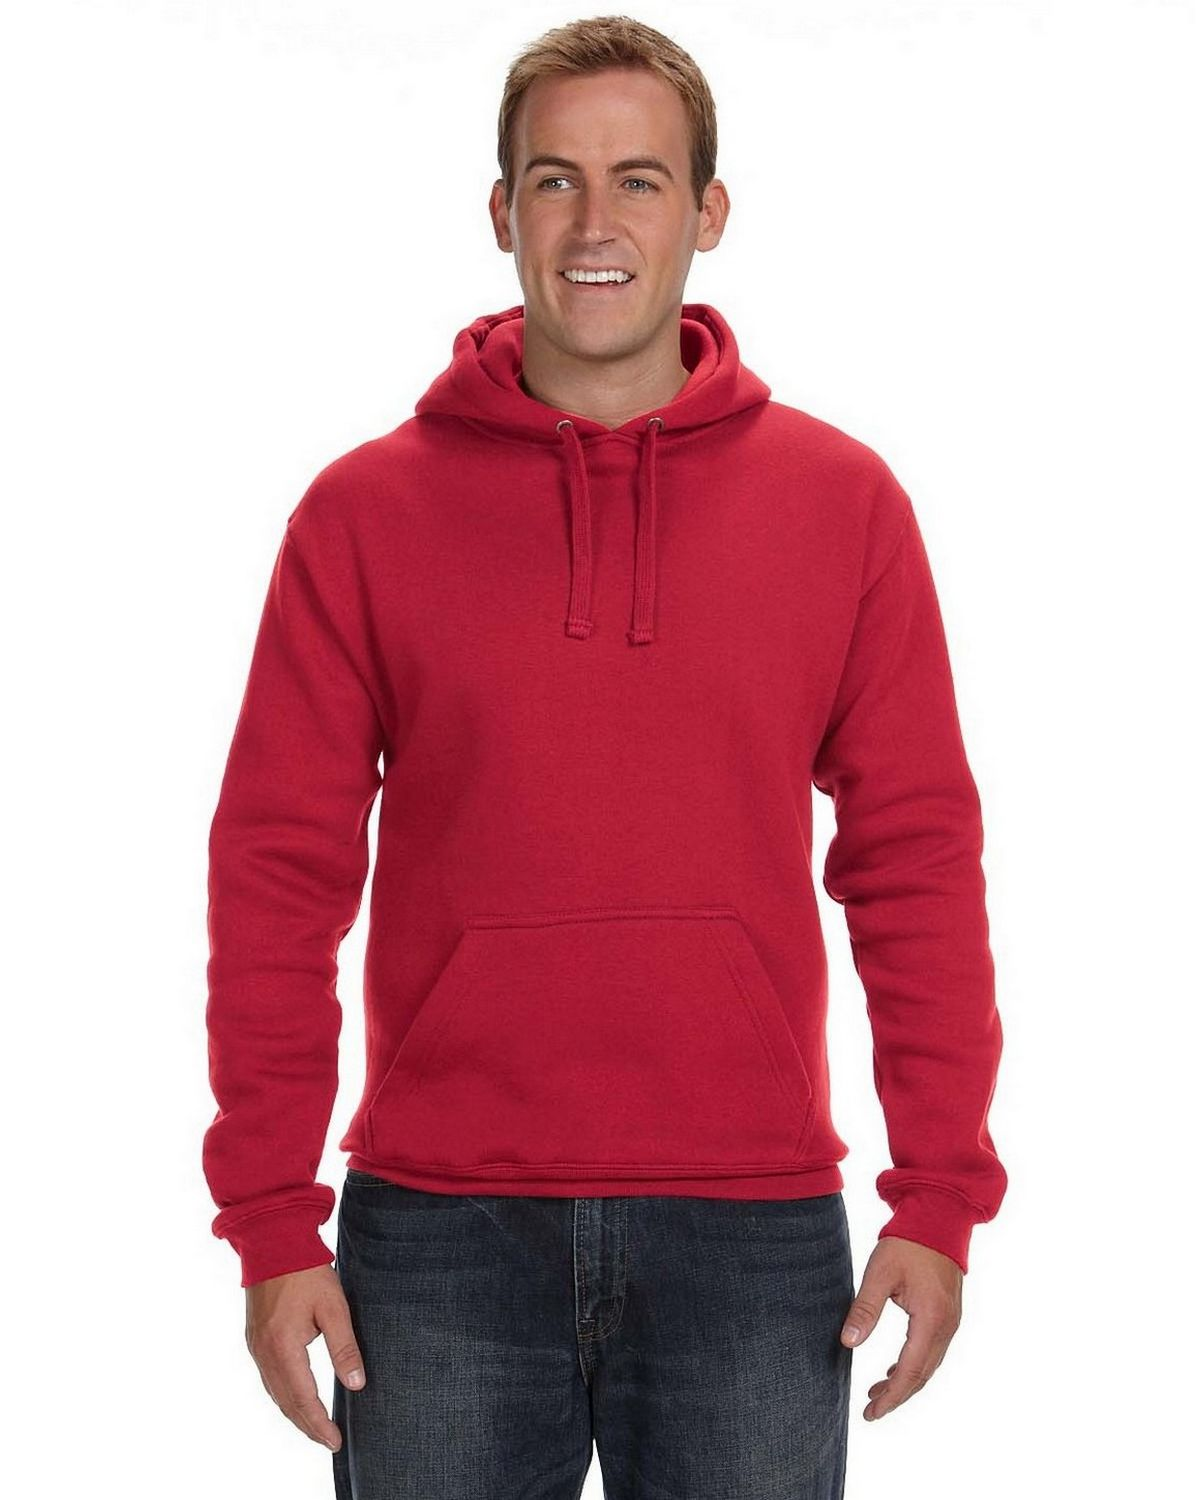 J America JA8824 Premium Fleece Pullover Hood - Charcoal Heather - M JA8824